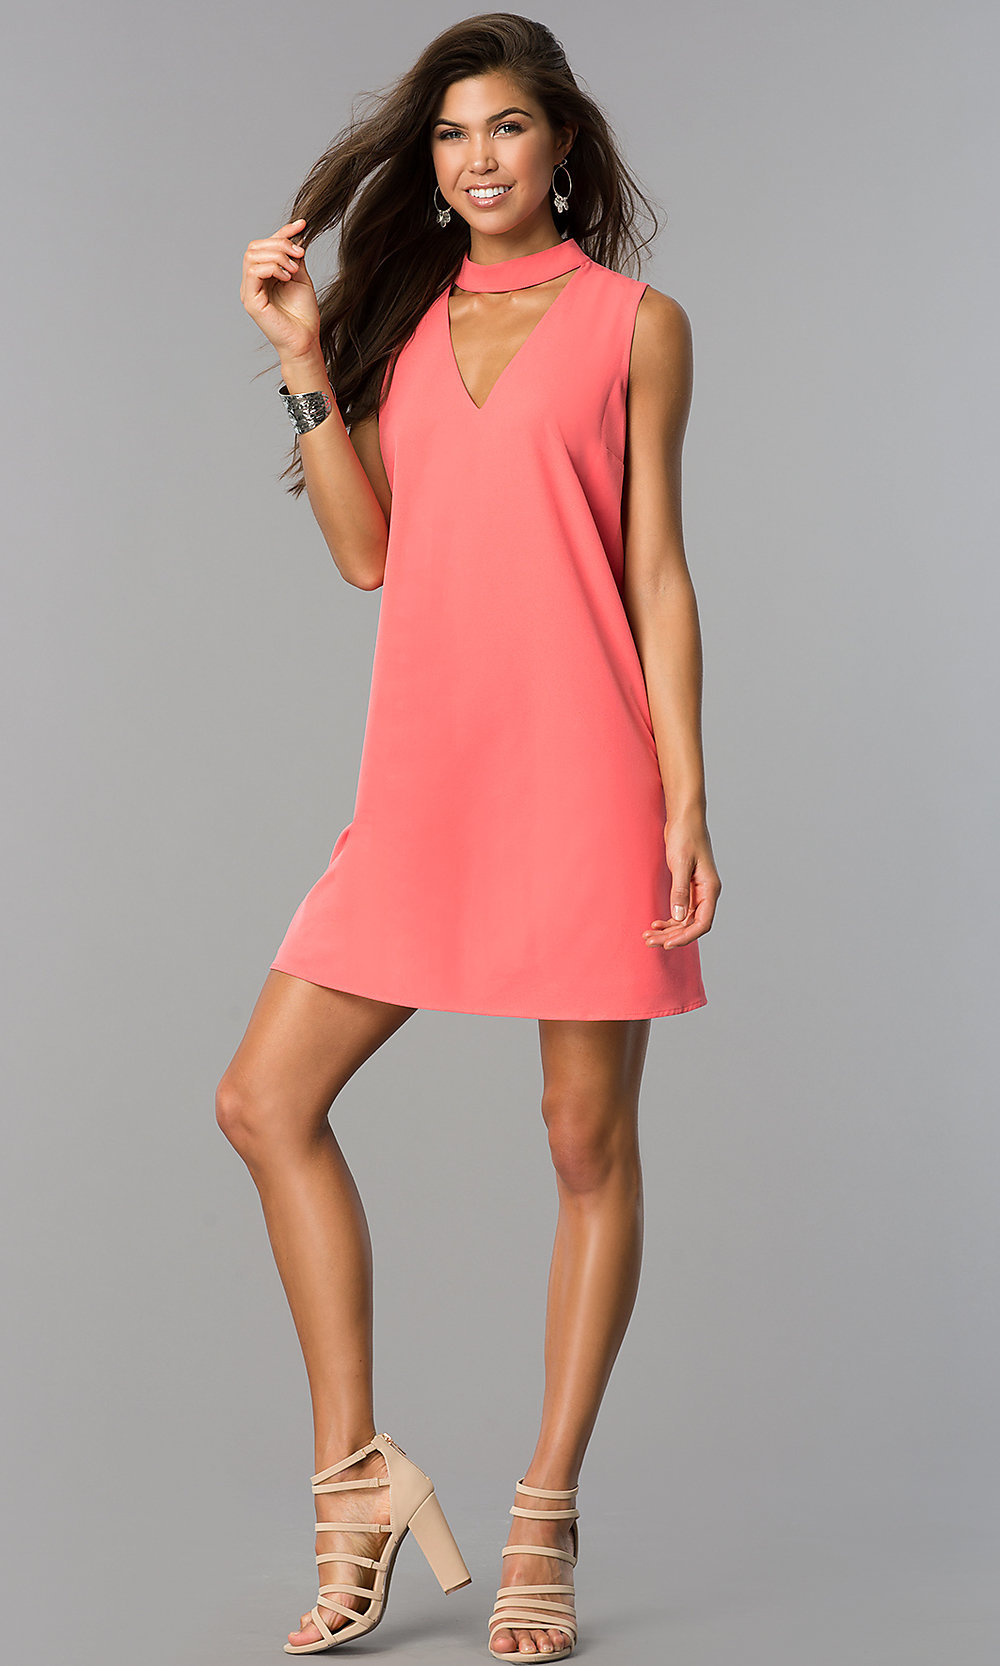 7e13f740 High-Neck Casual Short Shift Party Dress - PromGirl